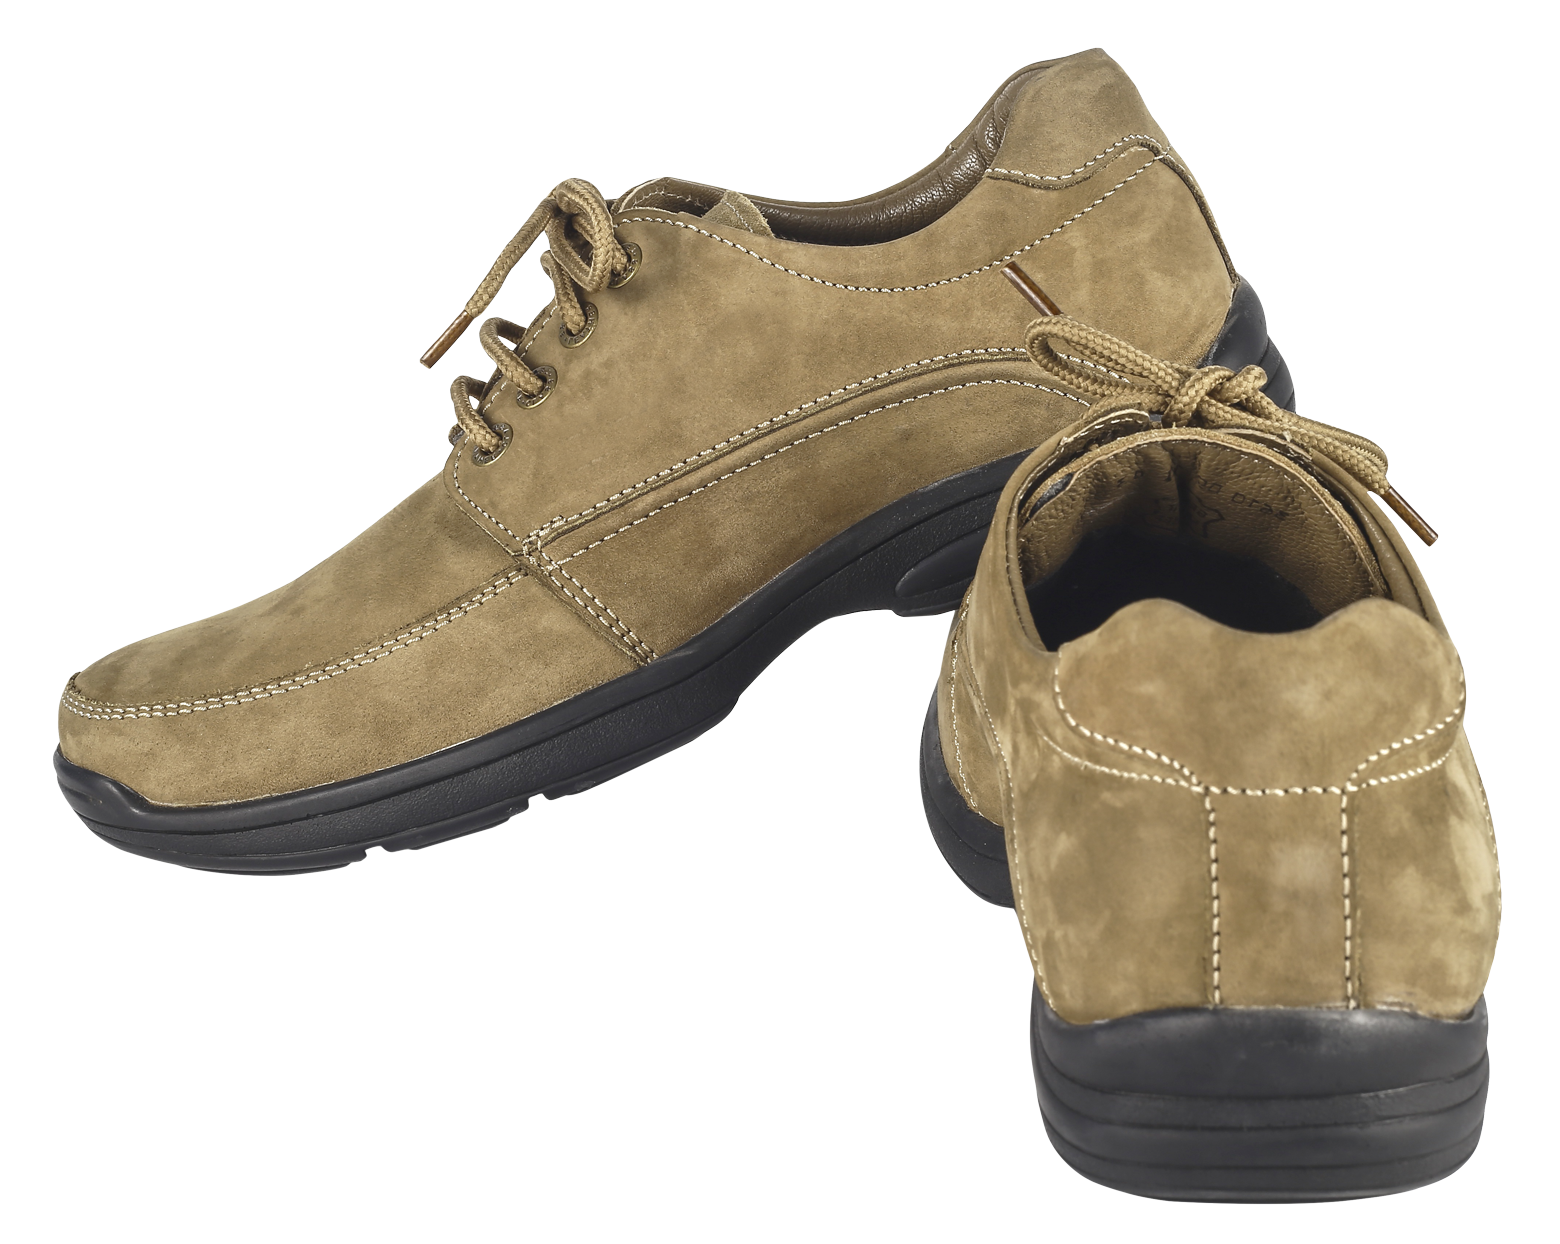 Shoe PNG Image